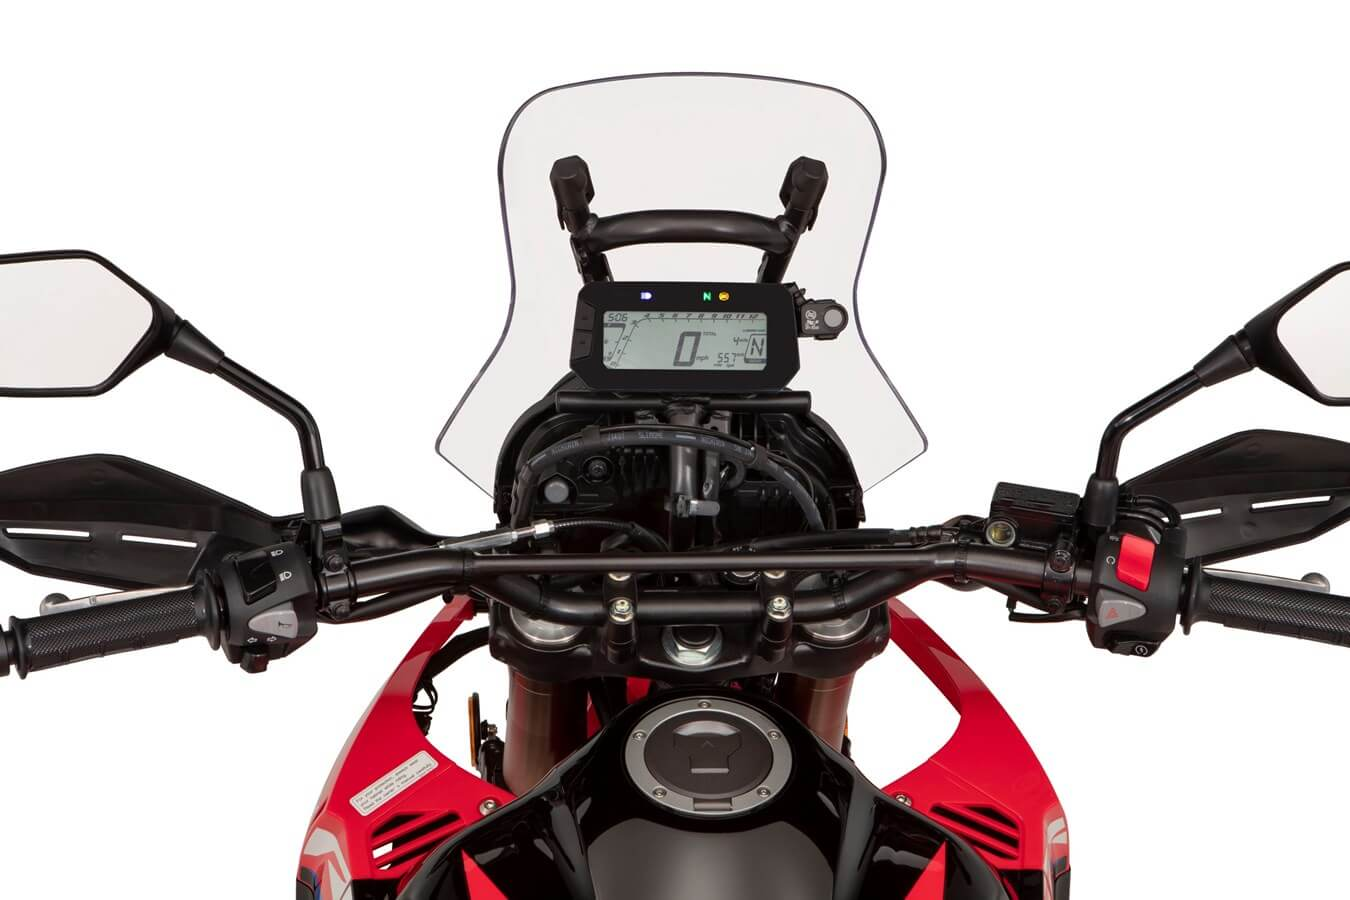 2021 Honda CRF300L Rally Gauges / Speedometer Display | Review / Specs + NEW Changes Explained on this 300 cc Dual Sport CRF Motorcycle!